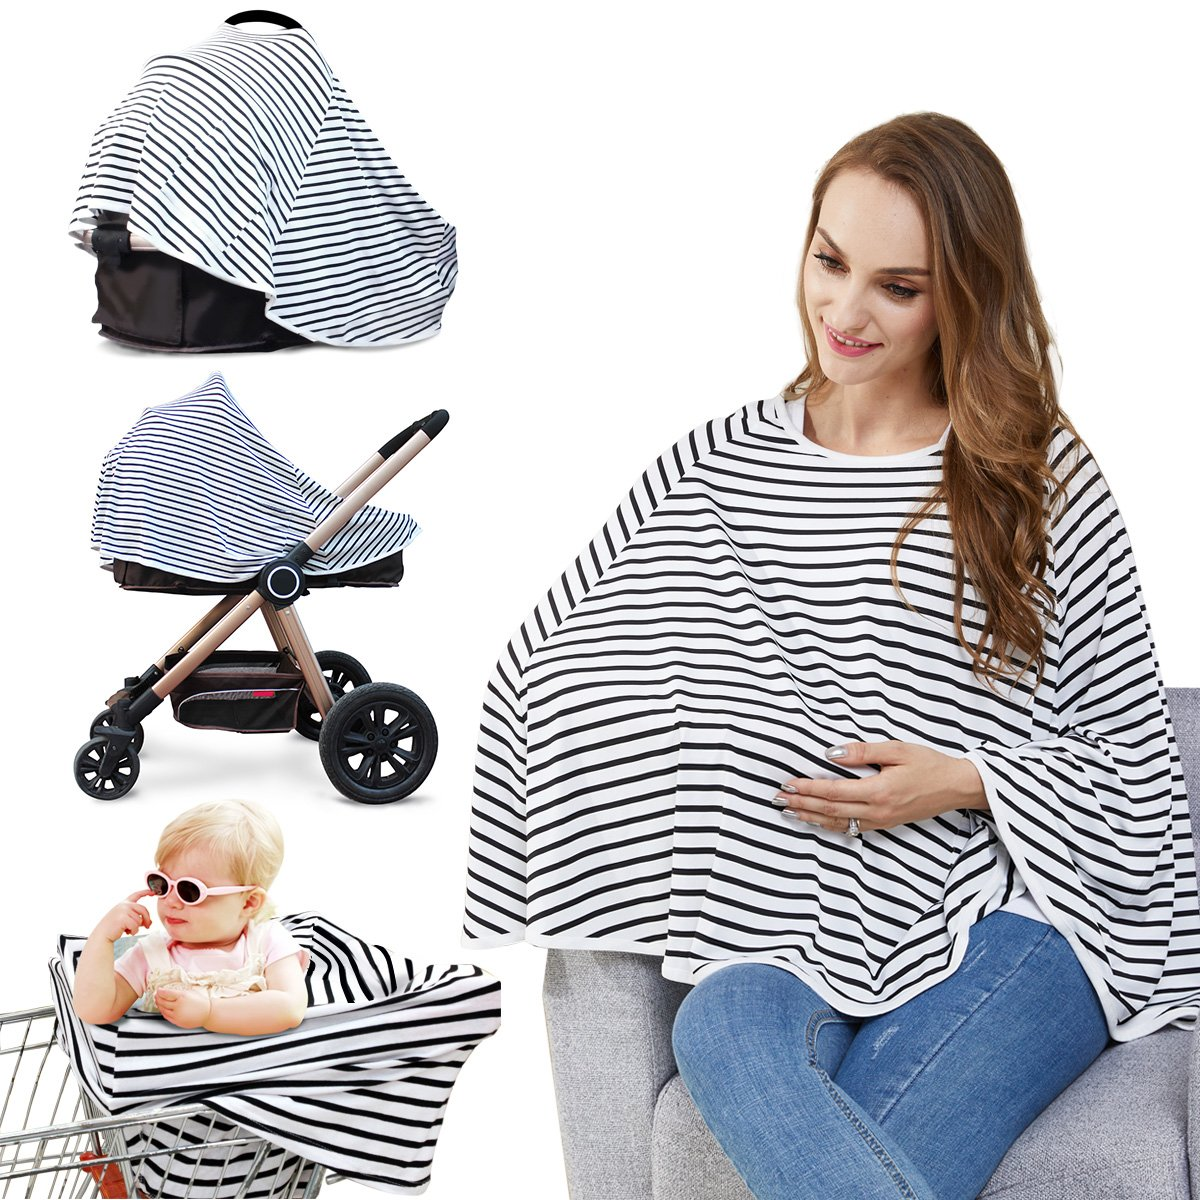 Baby Nursing Cover & Nursing Poncho - Multi Use Cover for Baby Car Seat Canopy, Shopping Cart Cover, Stroller Cover, 360° Full Privacy Breastfeeding Protection-Baby Gift for Boy&Girl (Black-White)